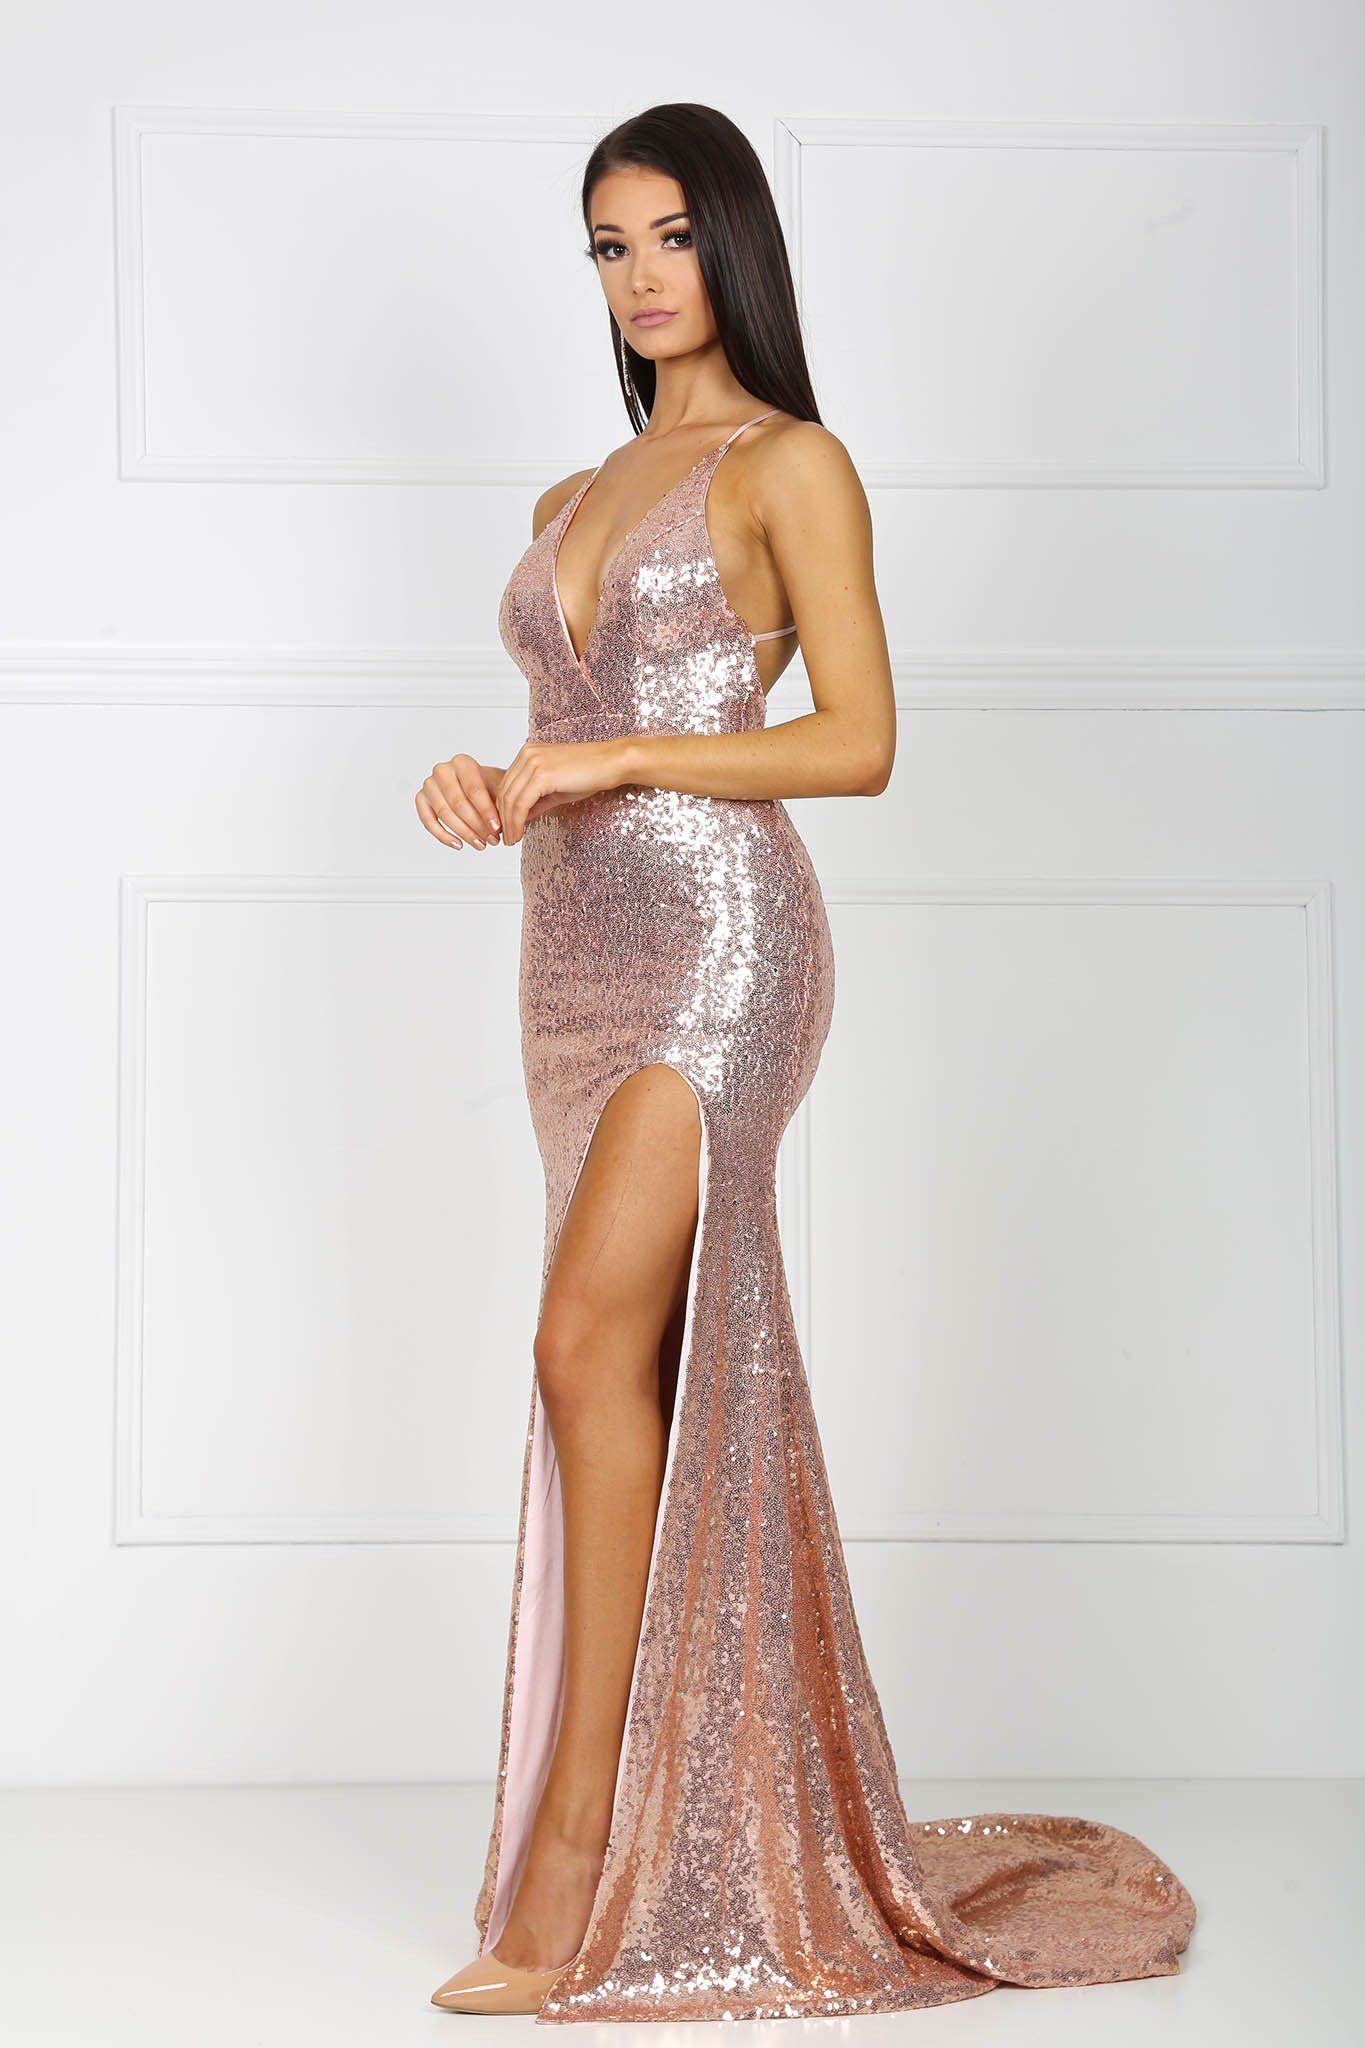 Rose gold sequin formal floor length sleeveless gown with front high split, V neckline, crisscross back thin straps, and a long train